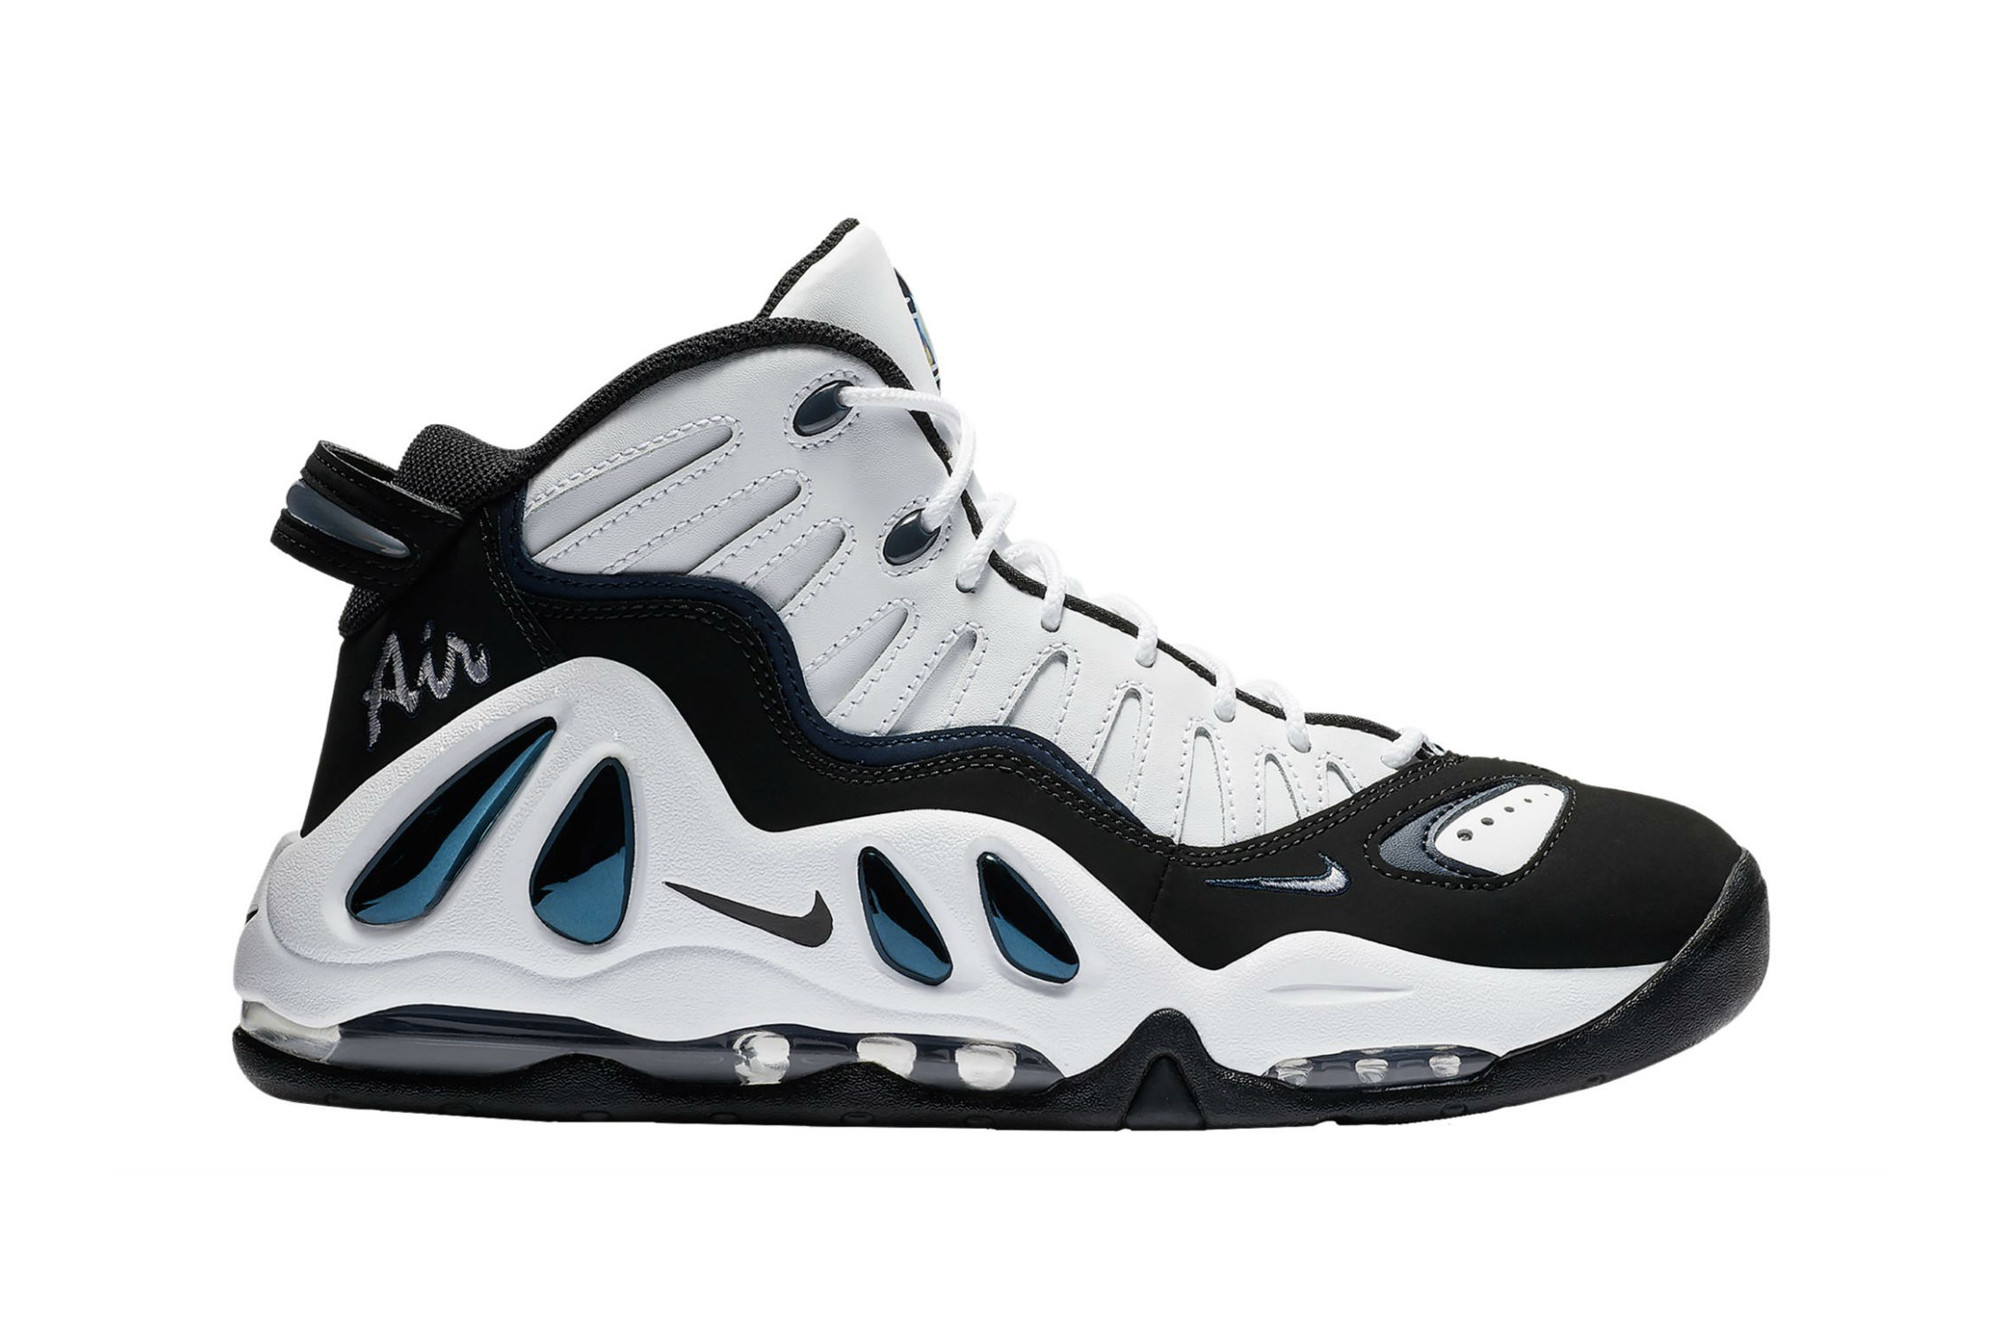 The Nike Air Max Uptempo 97 In \